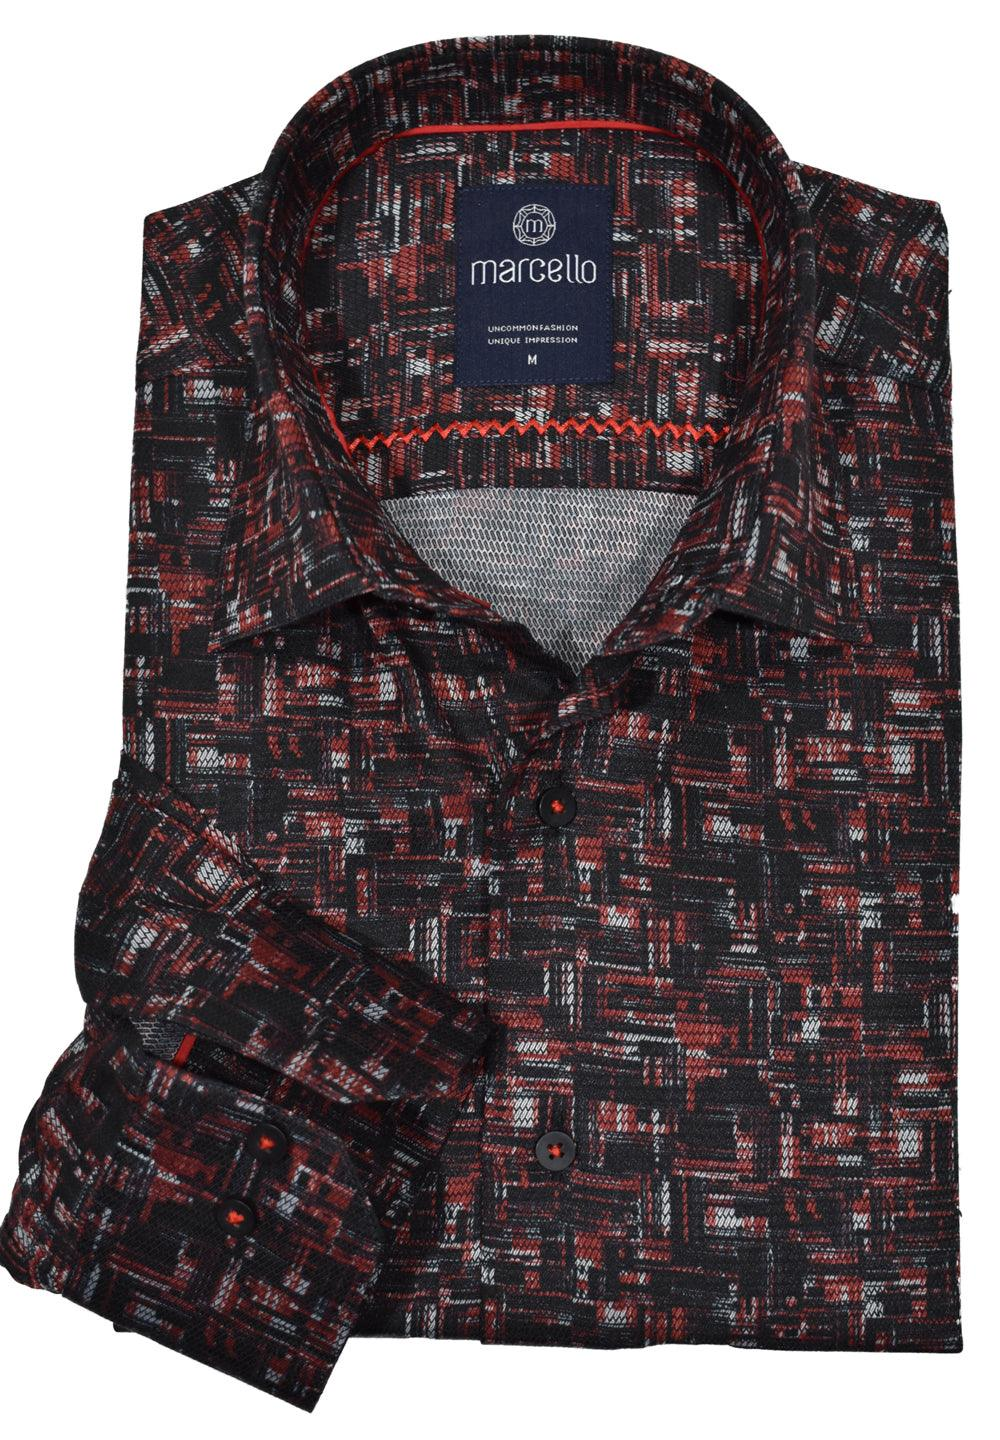 Following up on one of our most popular sport shirts, the rich, neat geometric pattern mixing black and red looks spectacular for any event. Accent detailing, a medium spread collar and cotton microfiber easy care fabric. Modern fit. Frais Shaded Shirt  Accent stitching brings out color. Soft cotton fabric with microfiber for easy care. Medium spread collar. Modern fit.